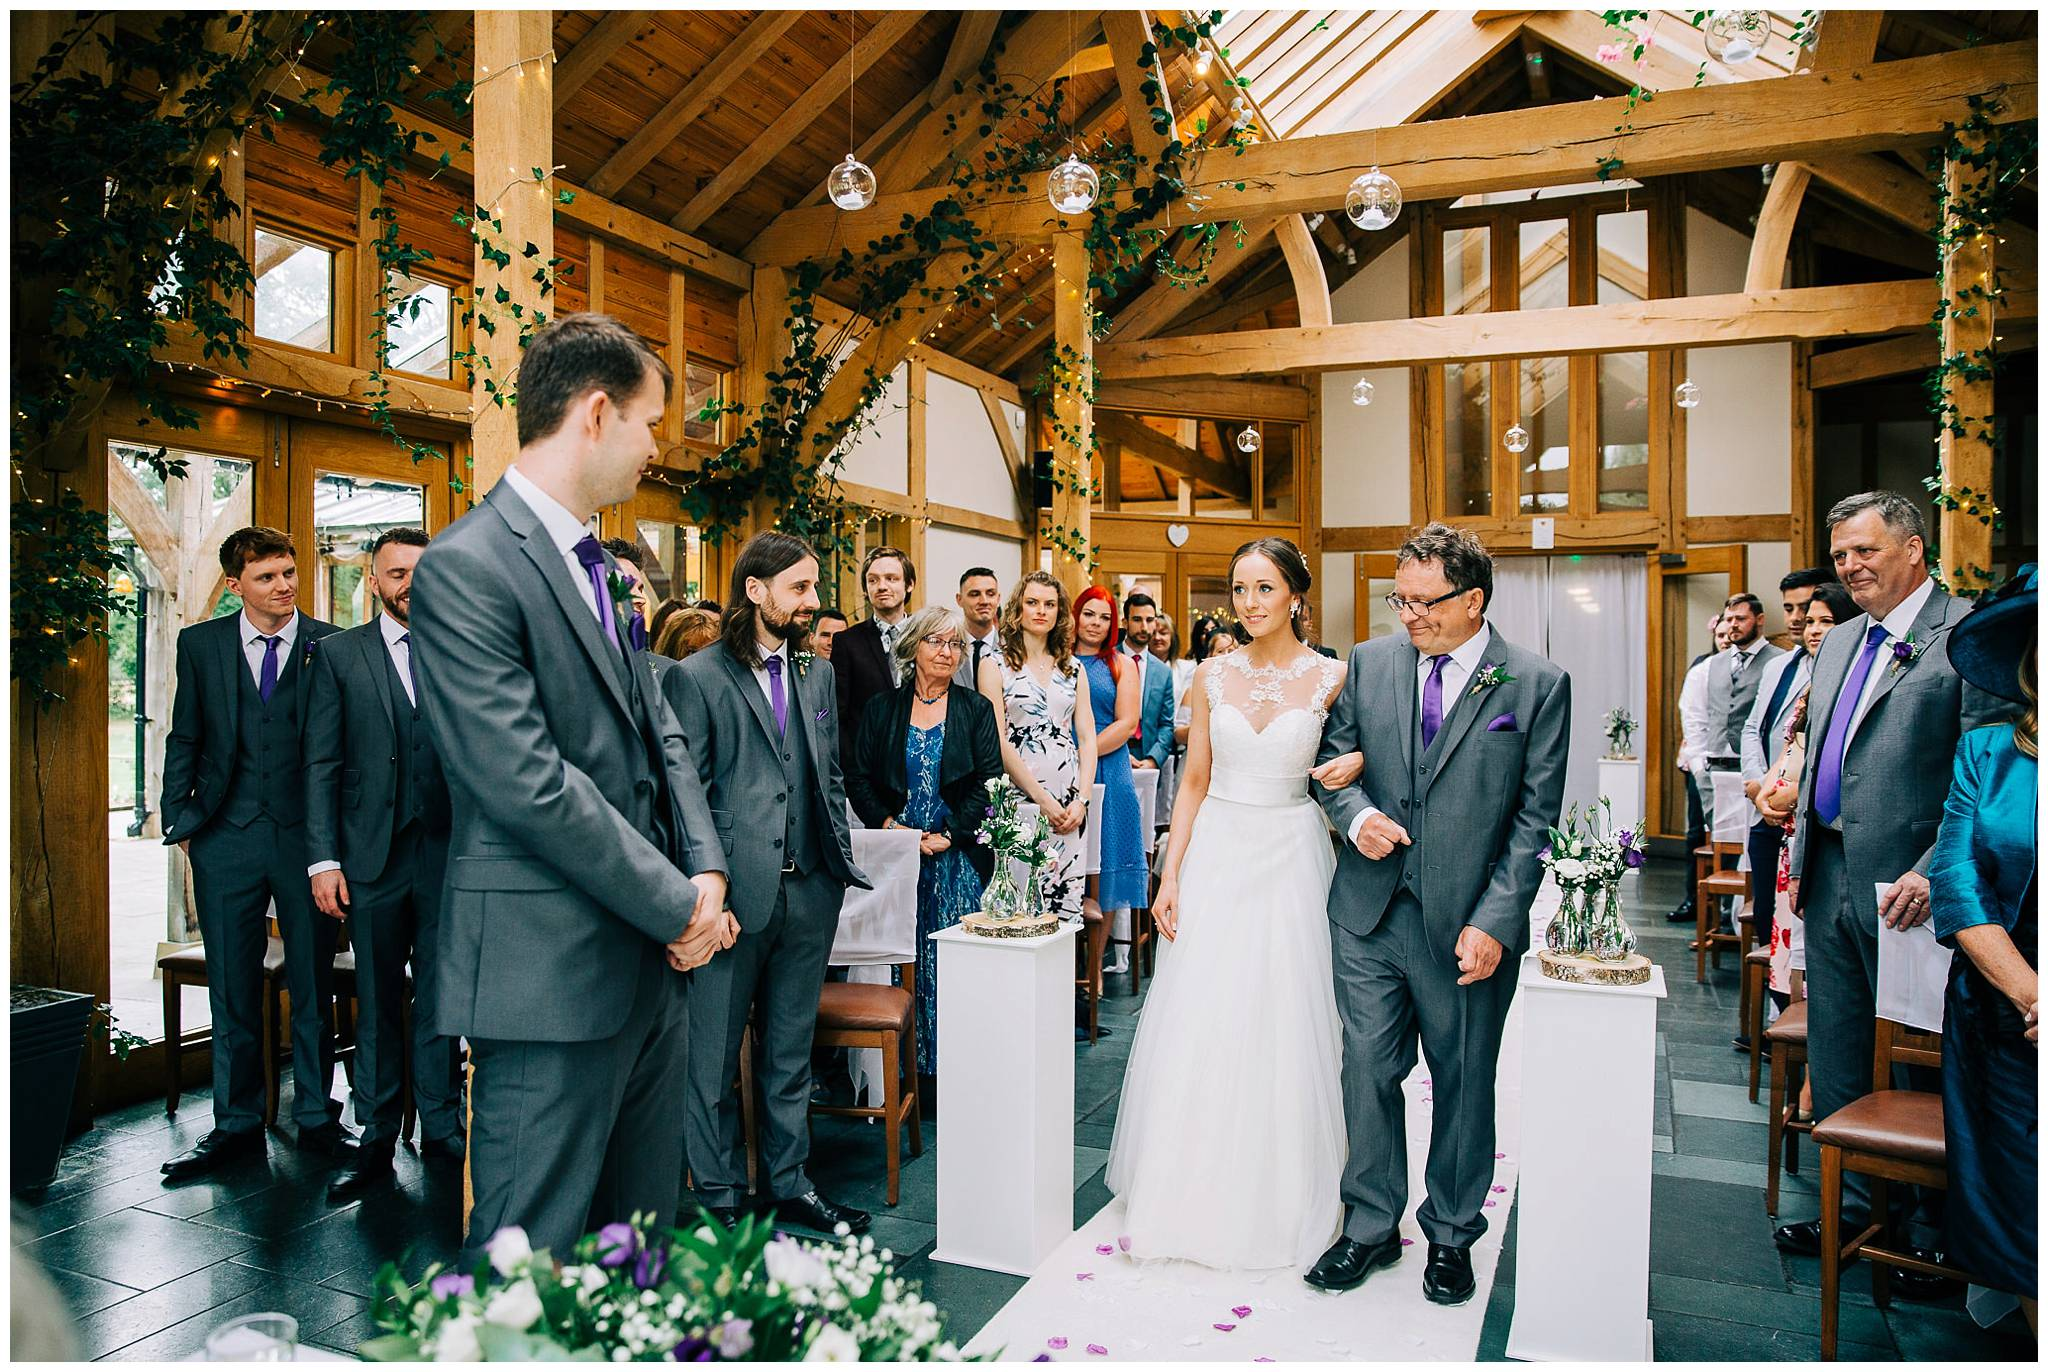 The Oak Tree at Peover - Cheshire Wedding Photographer-39.jpg